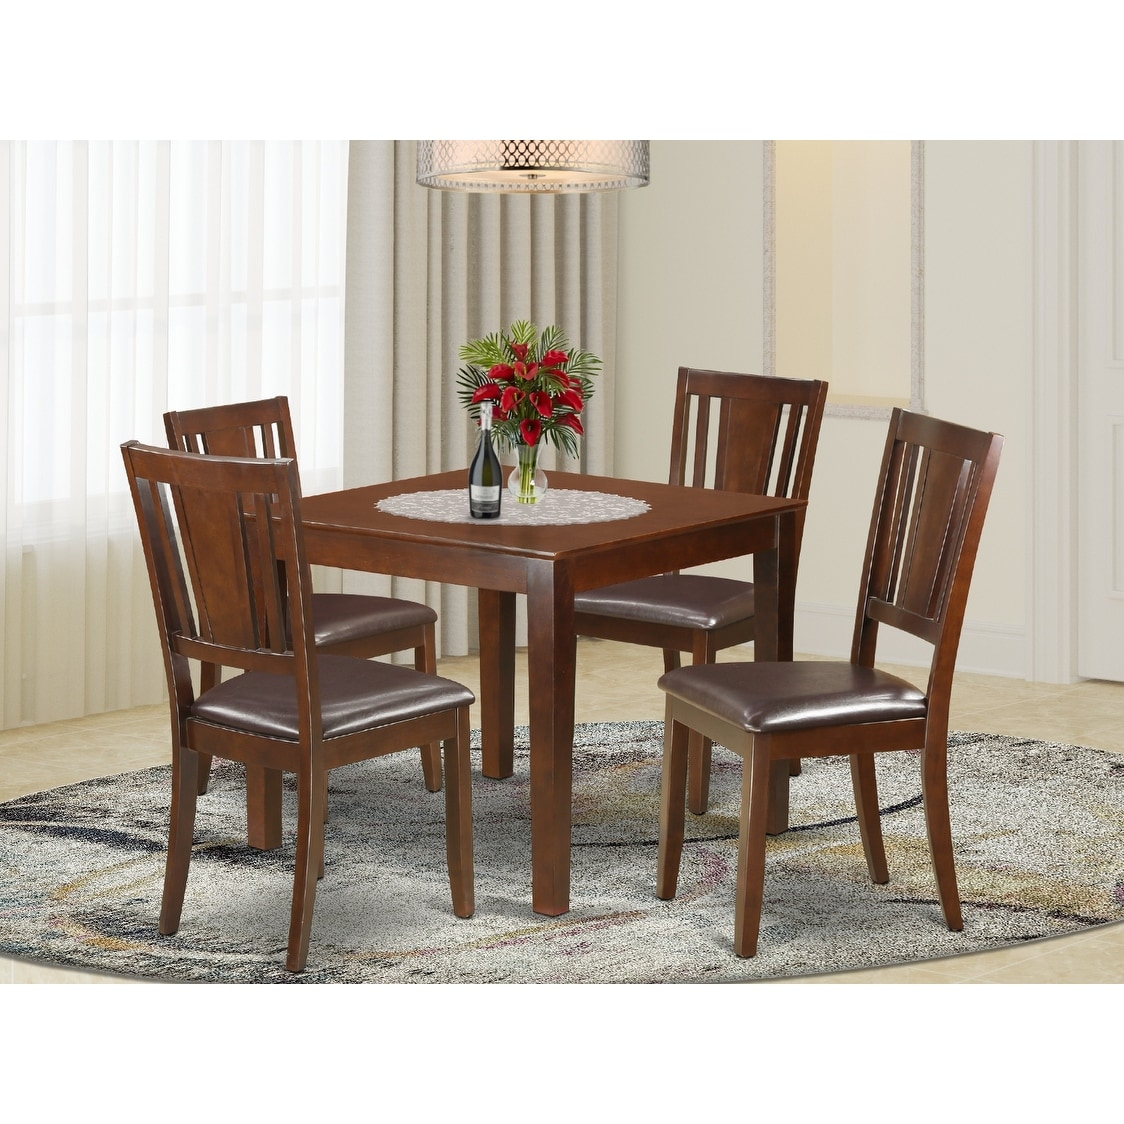 Oxford Mahogany Square 5 Piece Dinette Dining Set Overstock 14366596